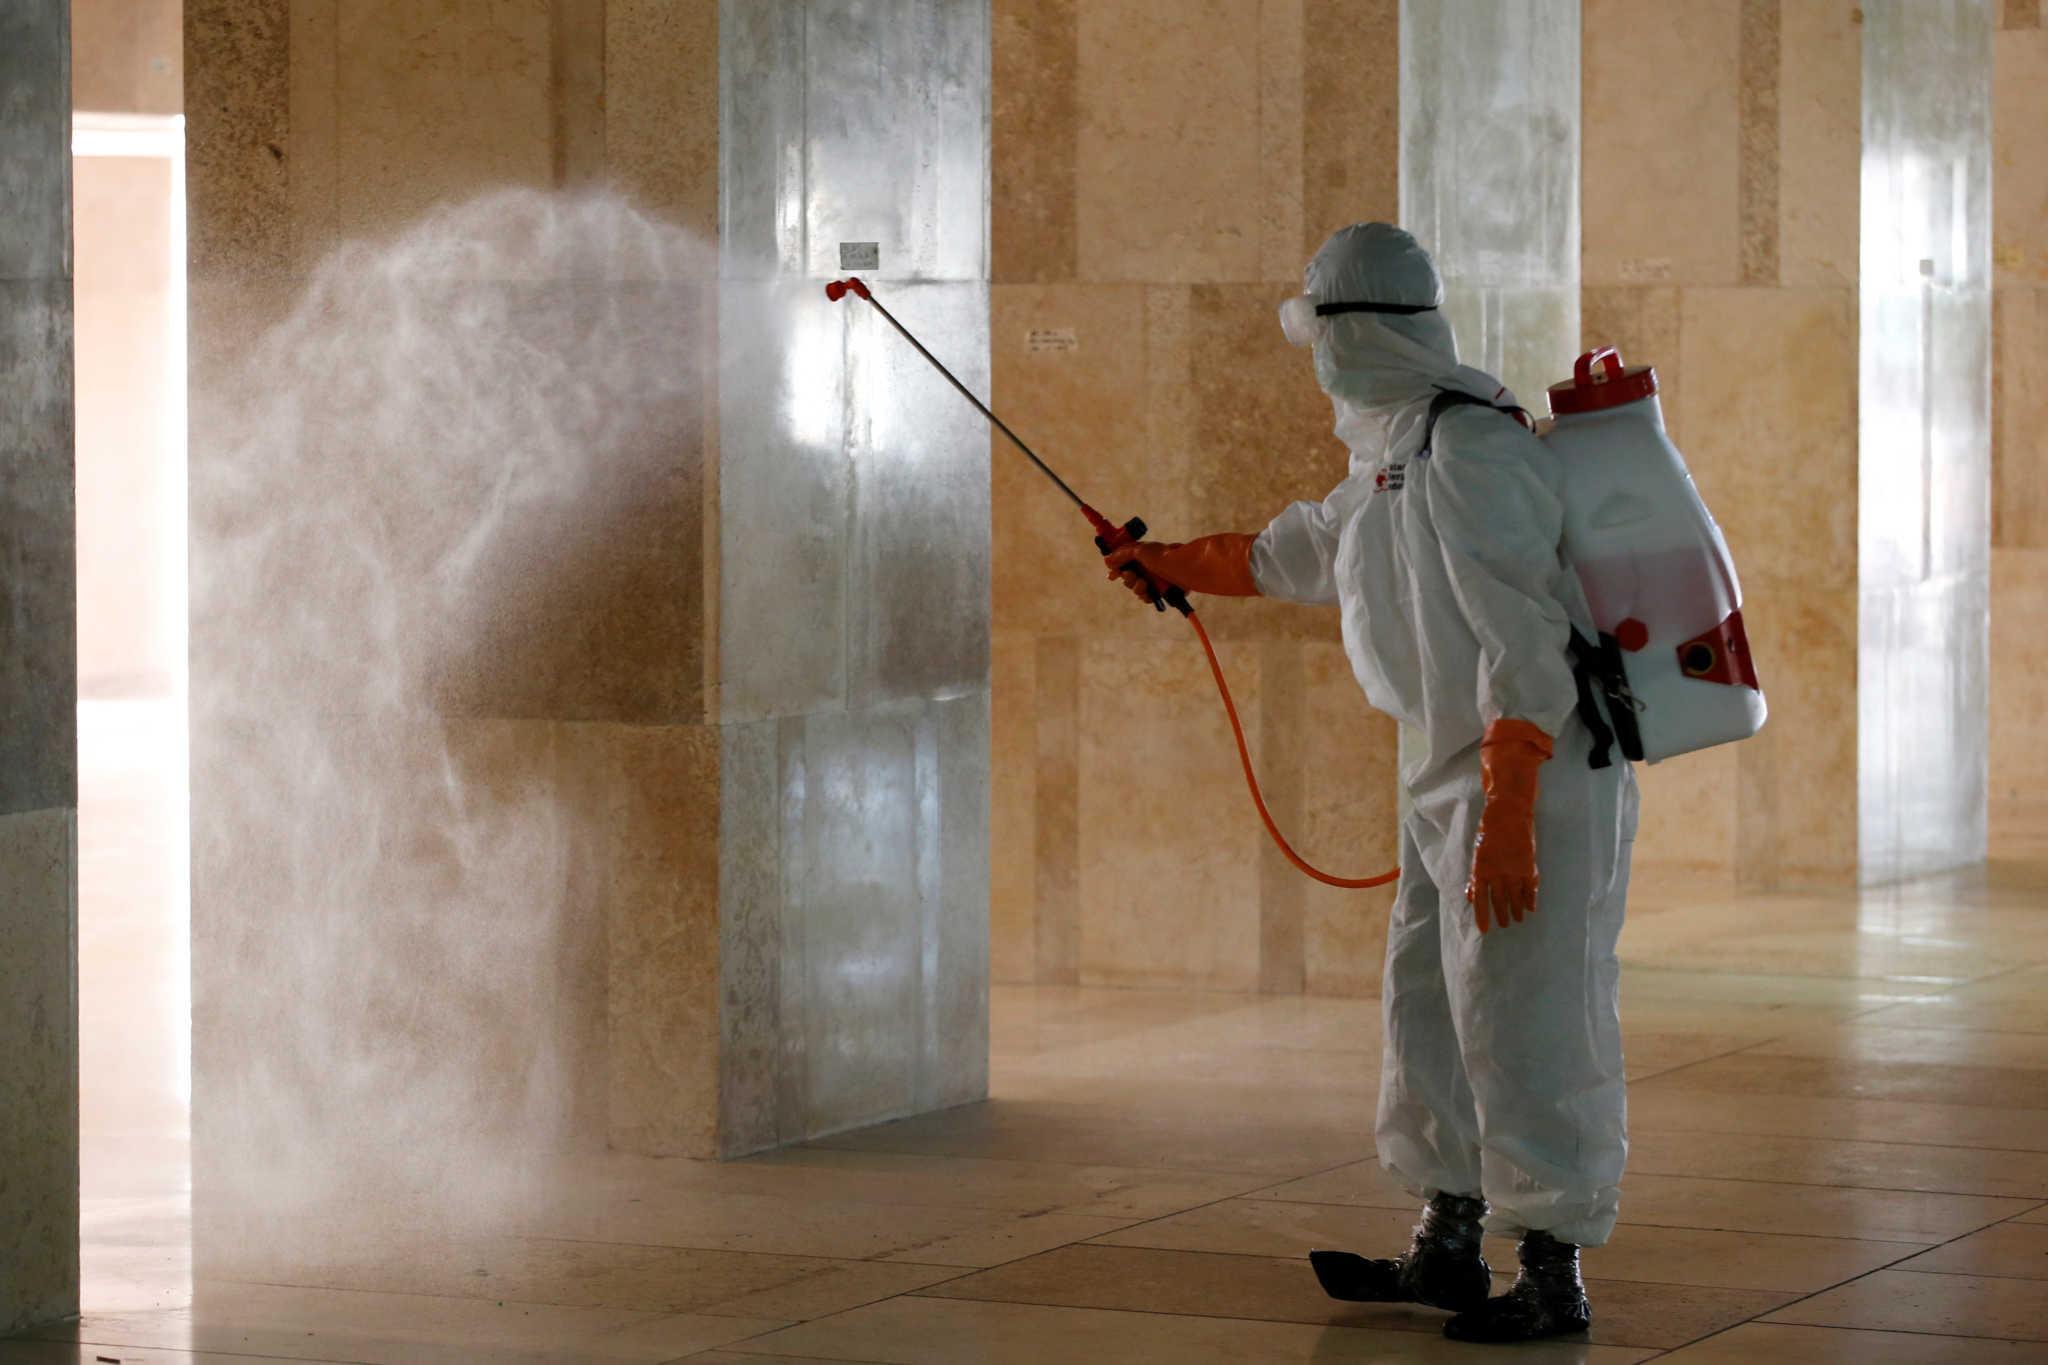 An Indonesian Red Cross personnel sprays disinfectant inside Istiqlal mosque, amid the coronavirus disease (COVID-19) in Jakarta, Indonesia, March 13, 2020. REUTERS/Willy Kurniawan